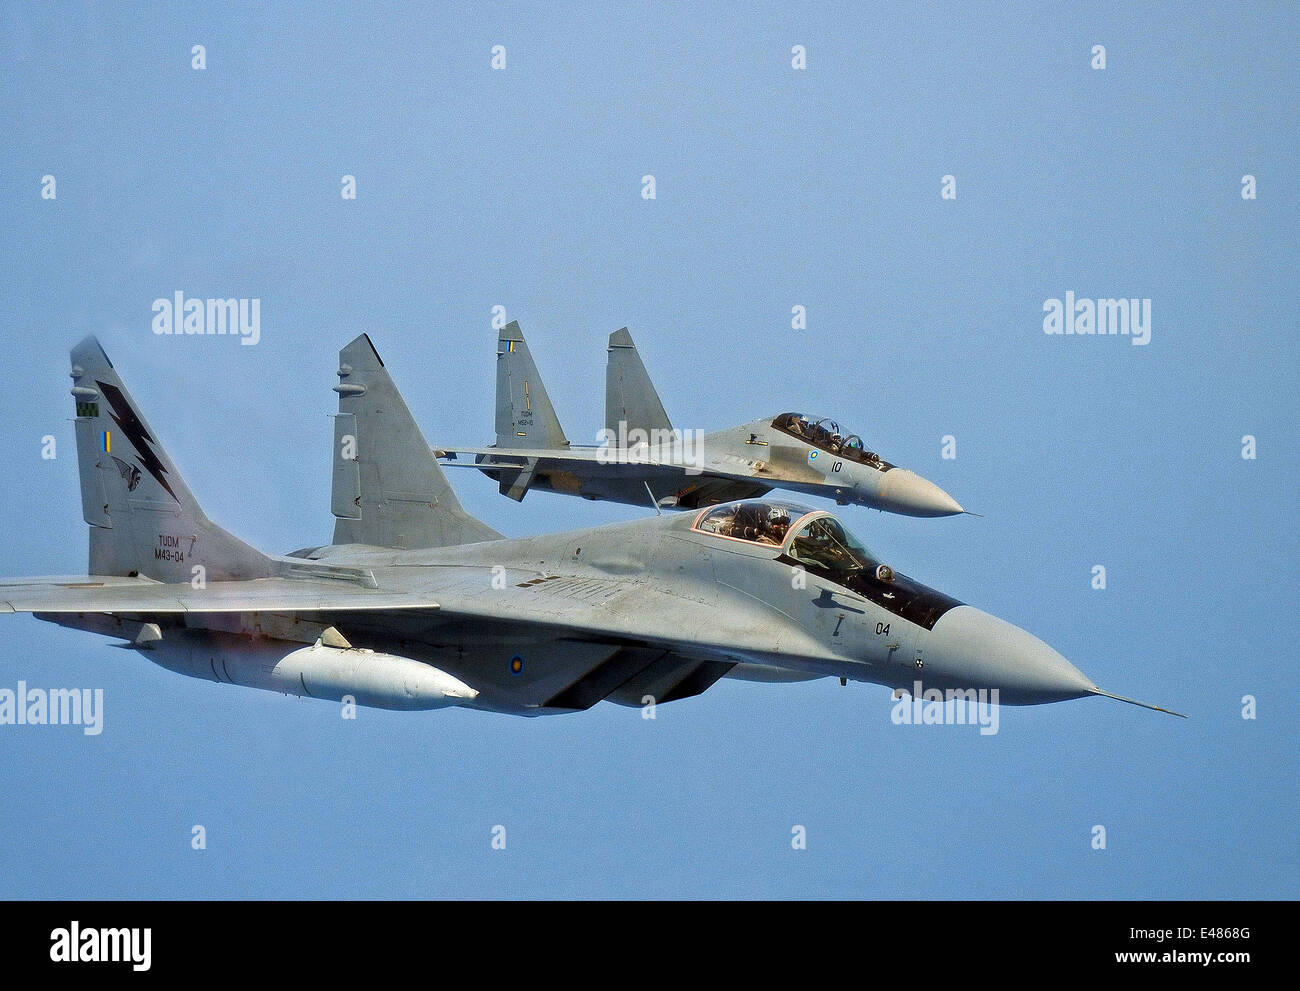 A Royal Malaysian Air Force MiG-29N Interceptor and Su-30MKM multirole fighter fly in wingtip formation during a - Stock Image